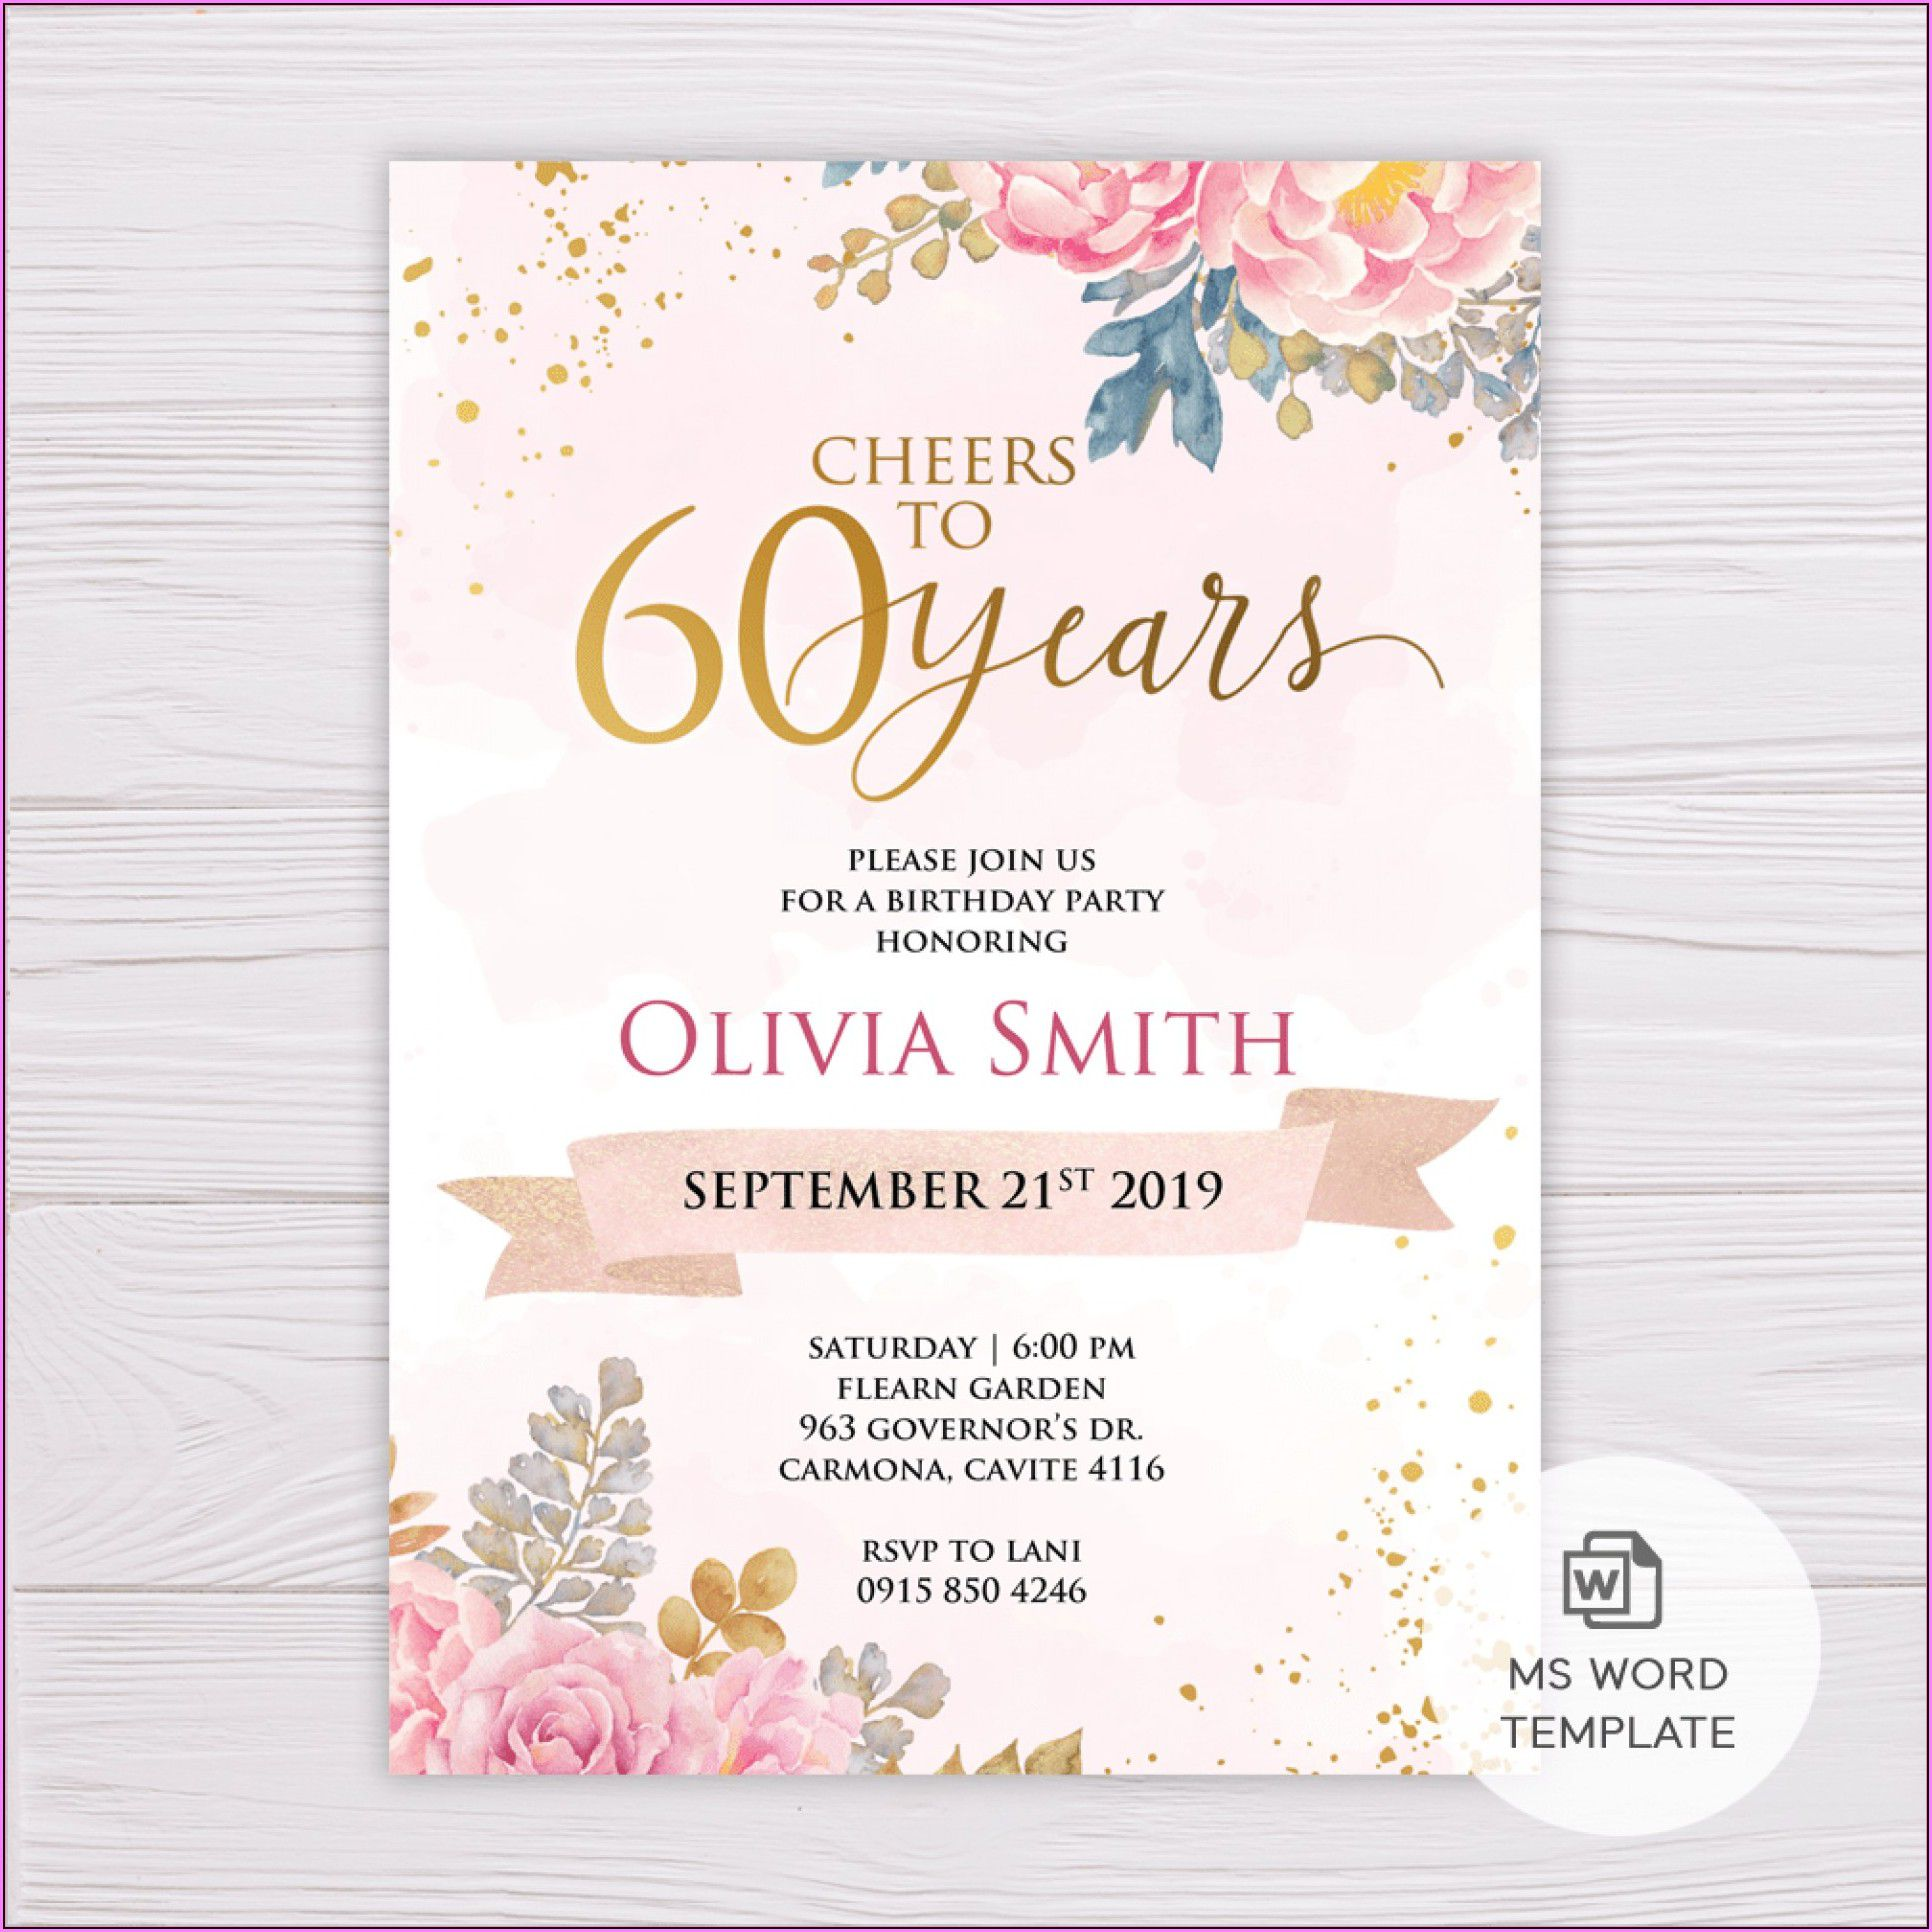 009 Dreaded 60th Birthday Invitation Template High Def  Card Free DownloadFull